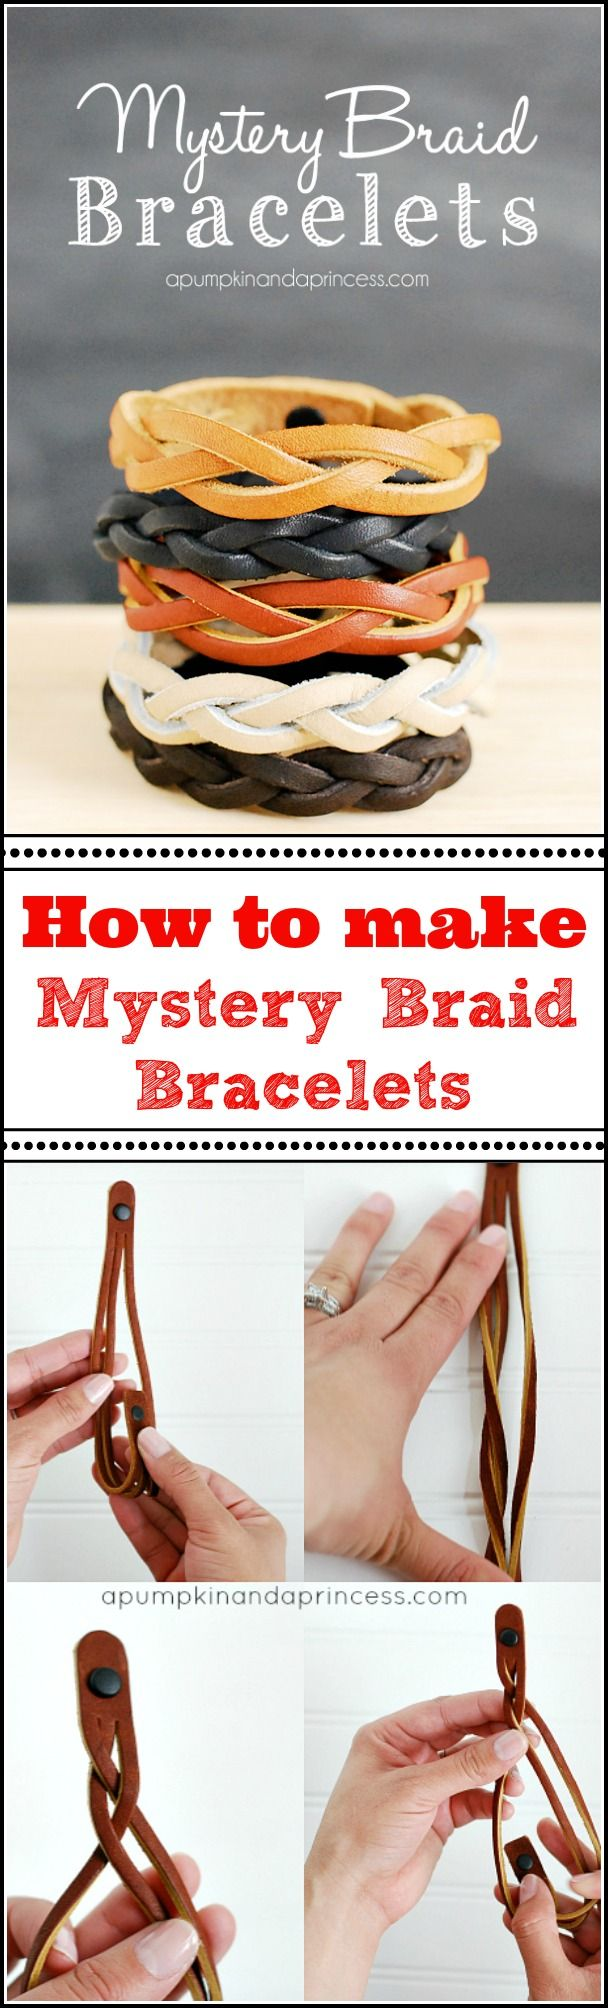 How to make a Mystery Braid Bracelet - A Pumpkin And A PrincessLeather Crafts, Crafts Ideas, Diy Crafts, Leather Jewelry Diy Ideas, Gift Ideas You V, Diy Bracelets, Braids Leather, Diy Projects, Braided Leather